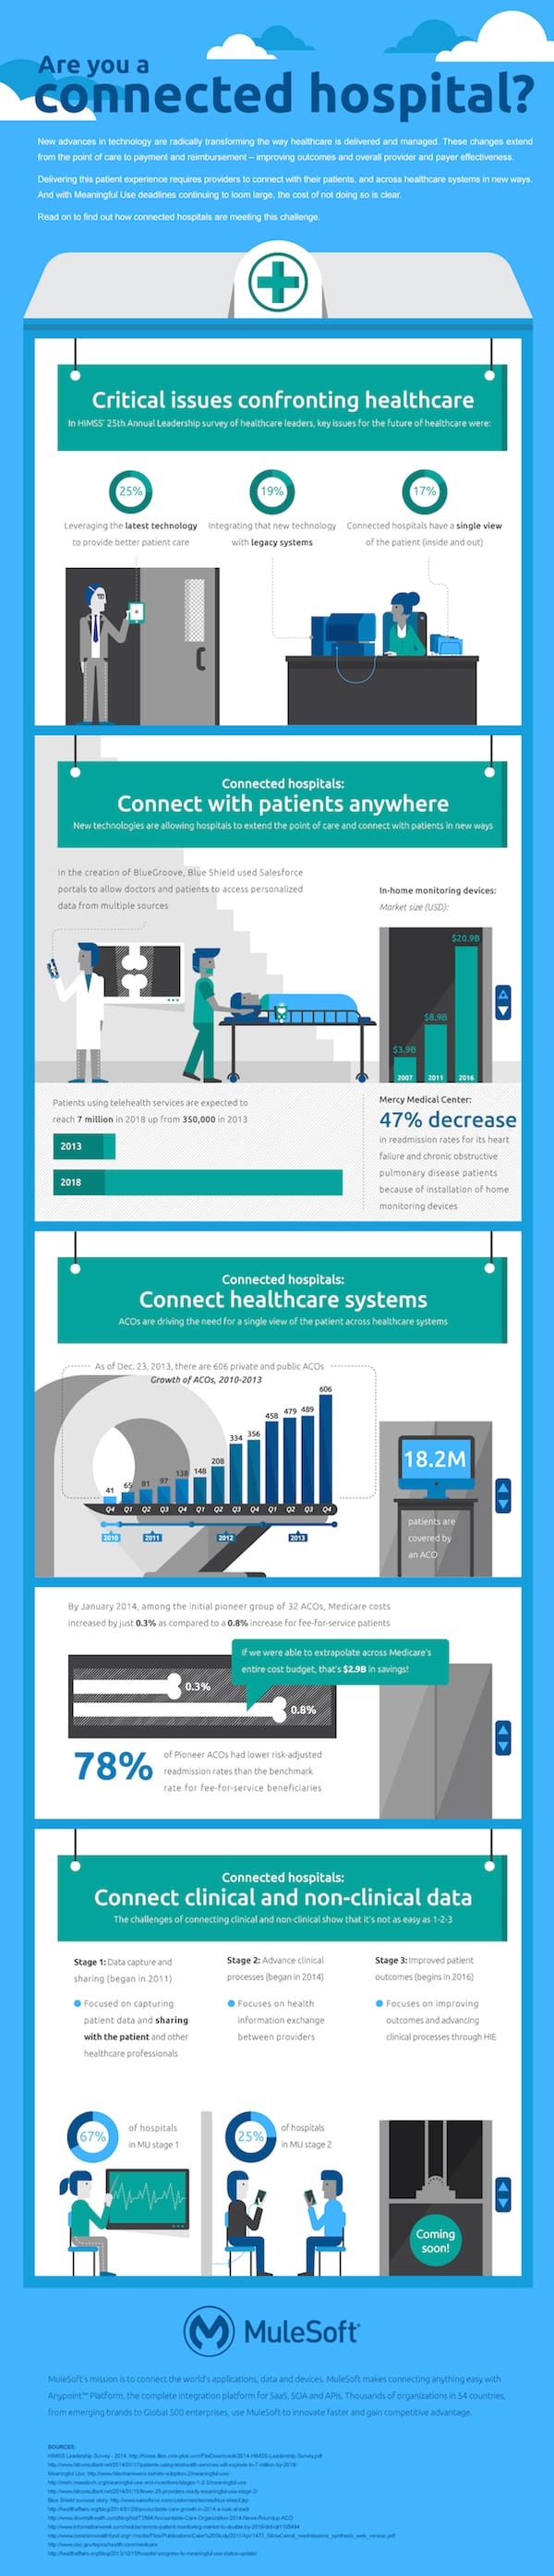 mulesoft healthcare integration solutions